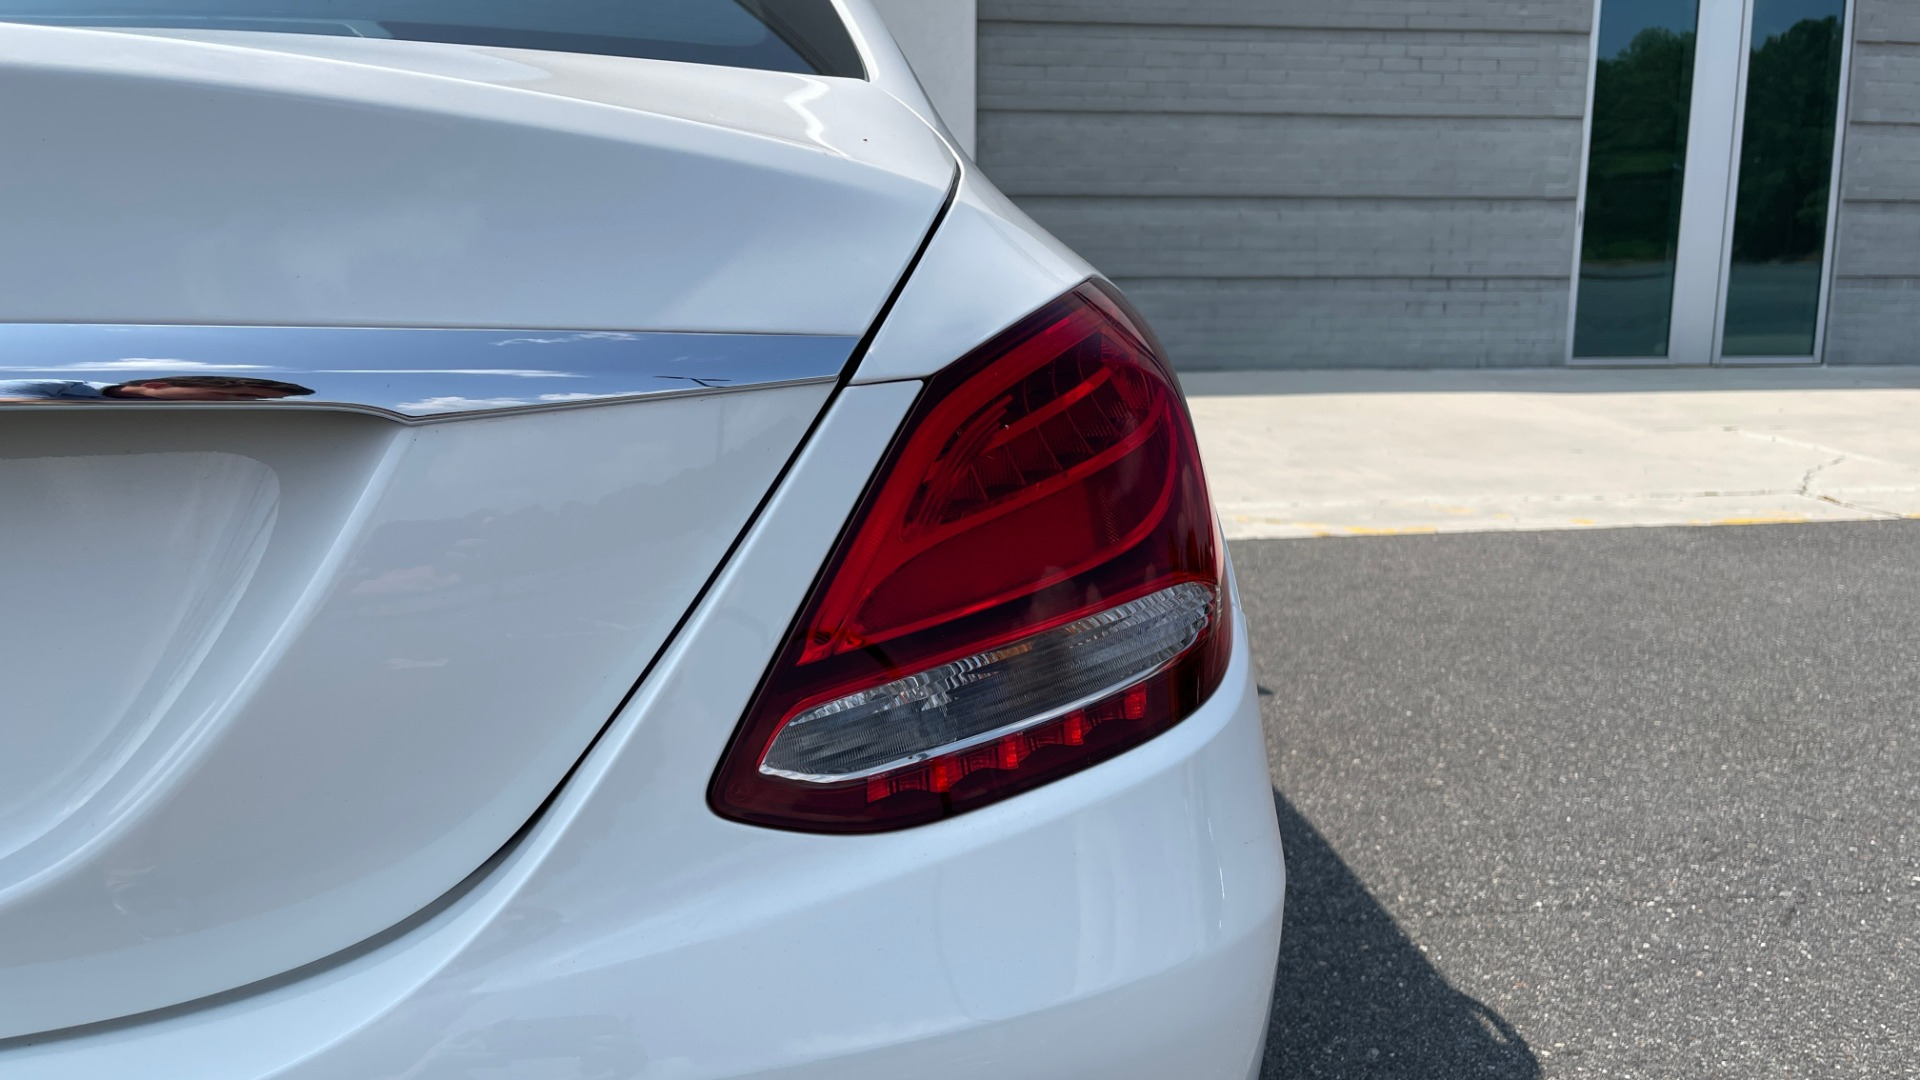 Used 2018 Mercedes-Benz C-CLASS C 300 / 2.0L / RWD / SUNROOF / APPLE~ANDROID / REARVIEW for sale $29,995 at Formula Imports in Charlotte NC 28227 22